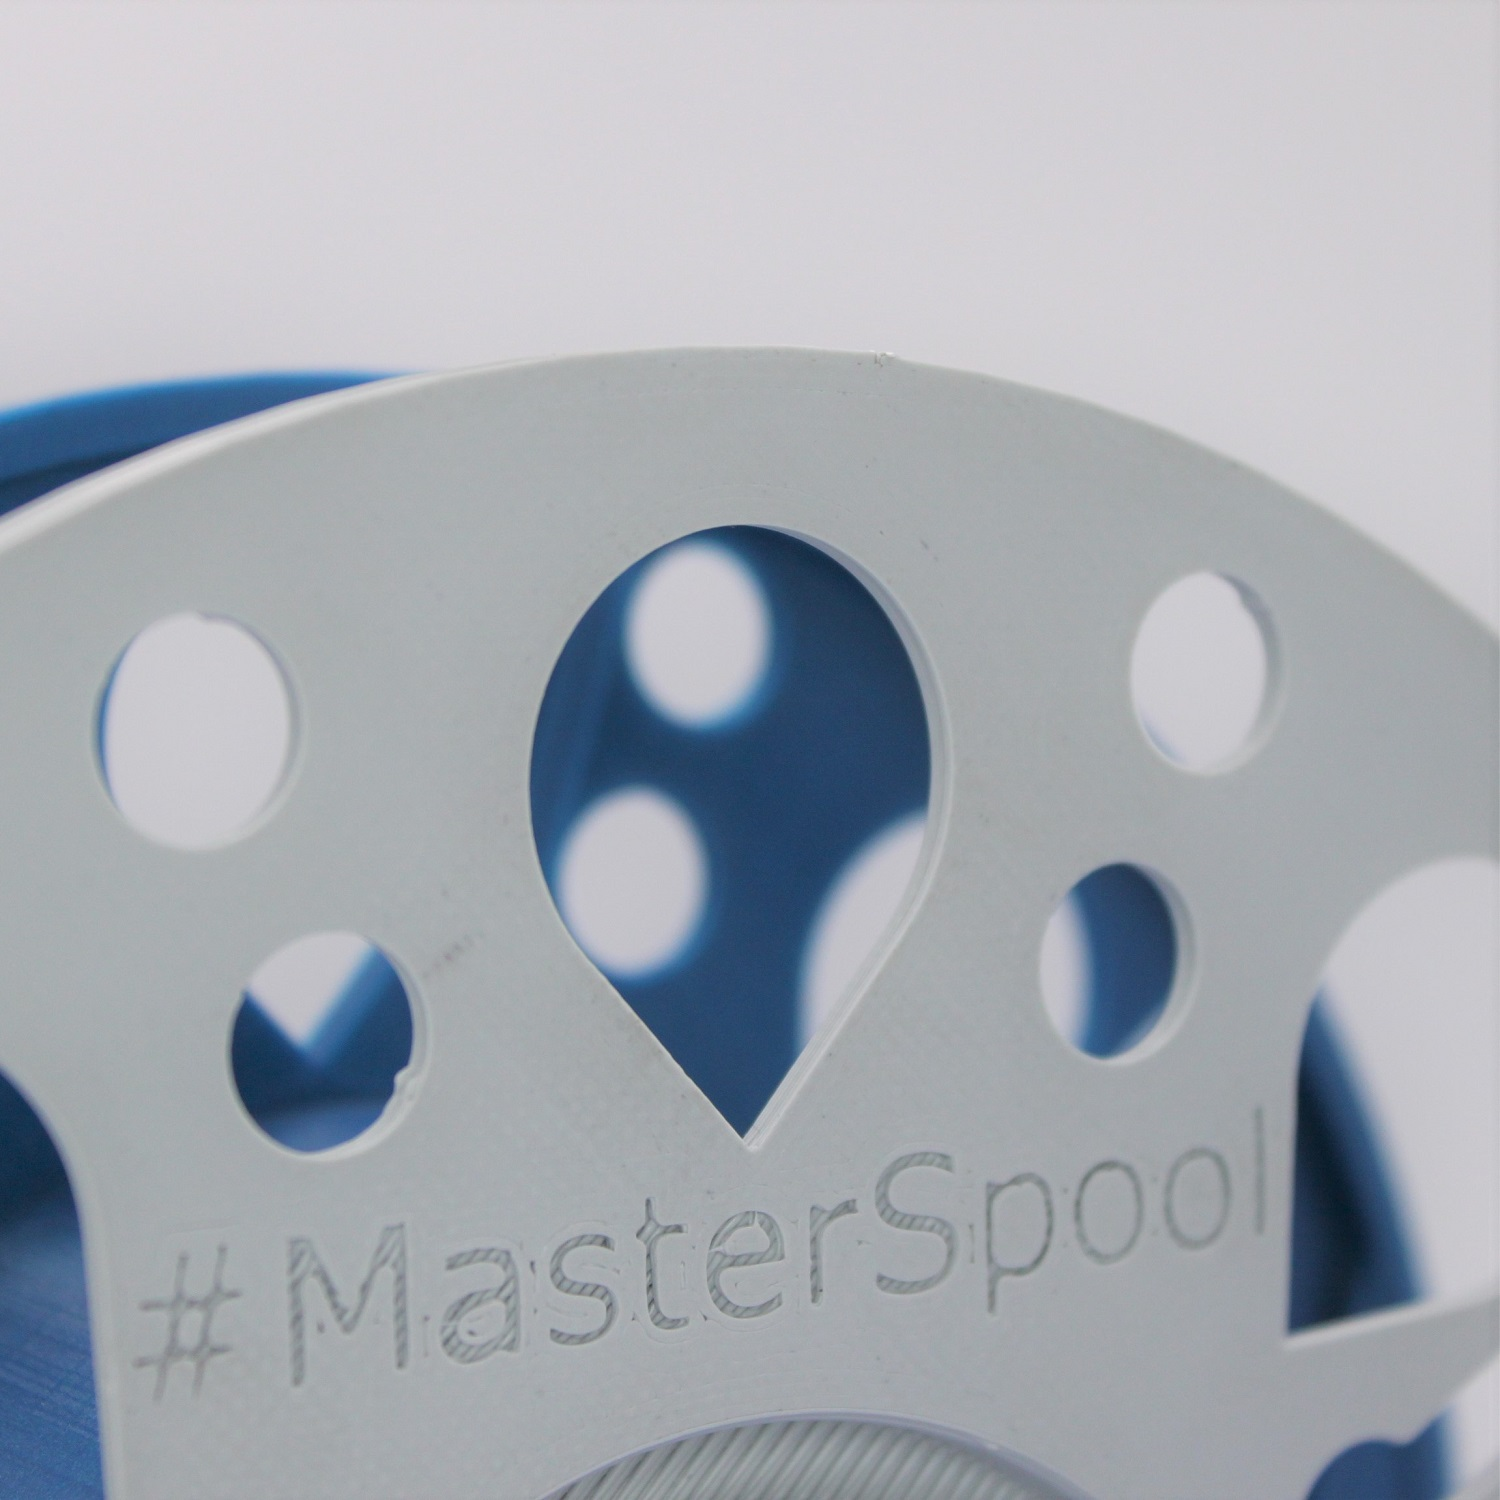 More info on Masterspool Filament Refills